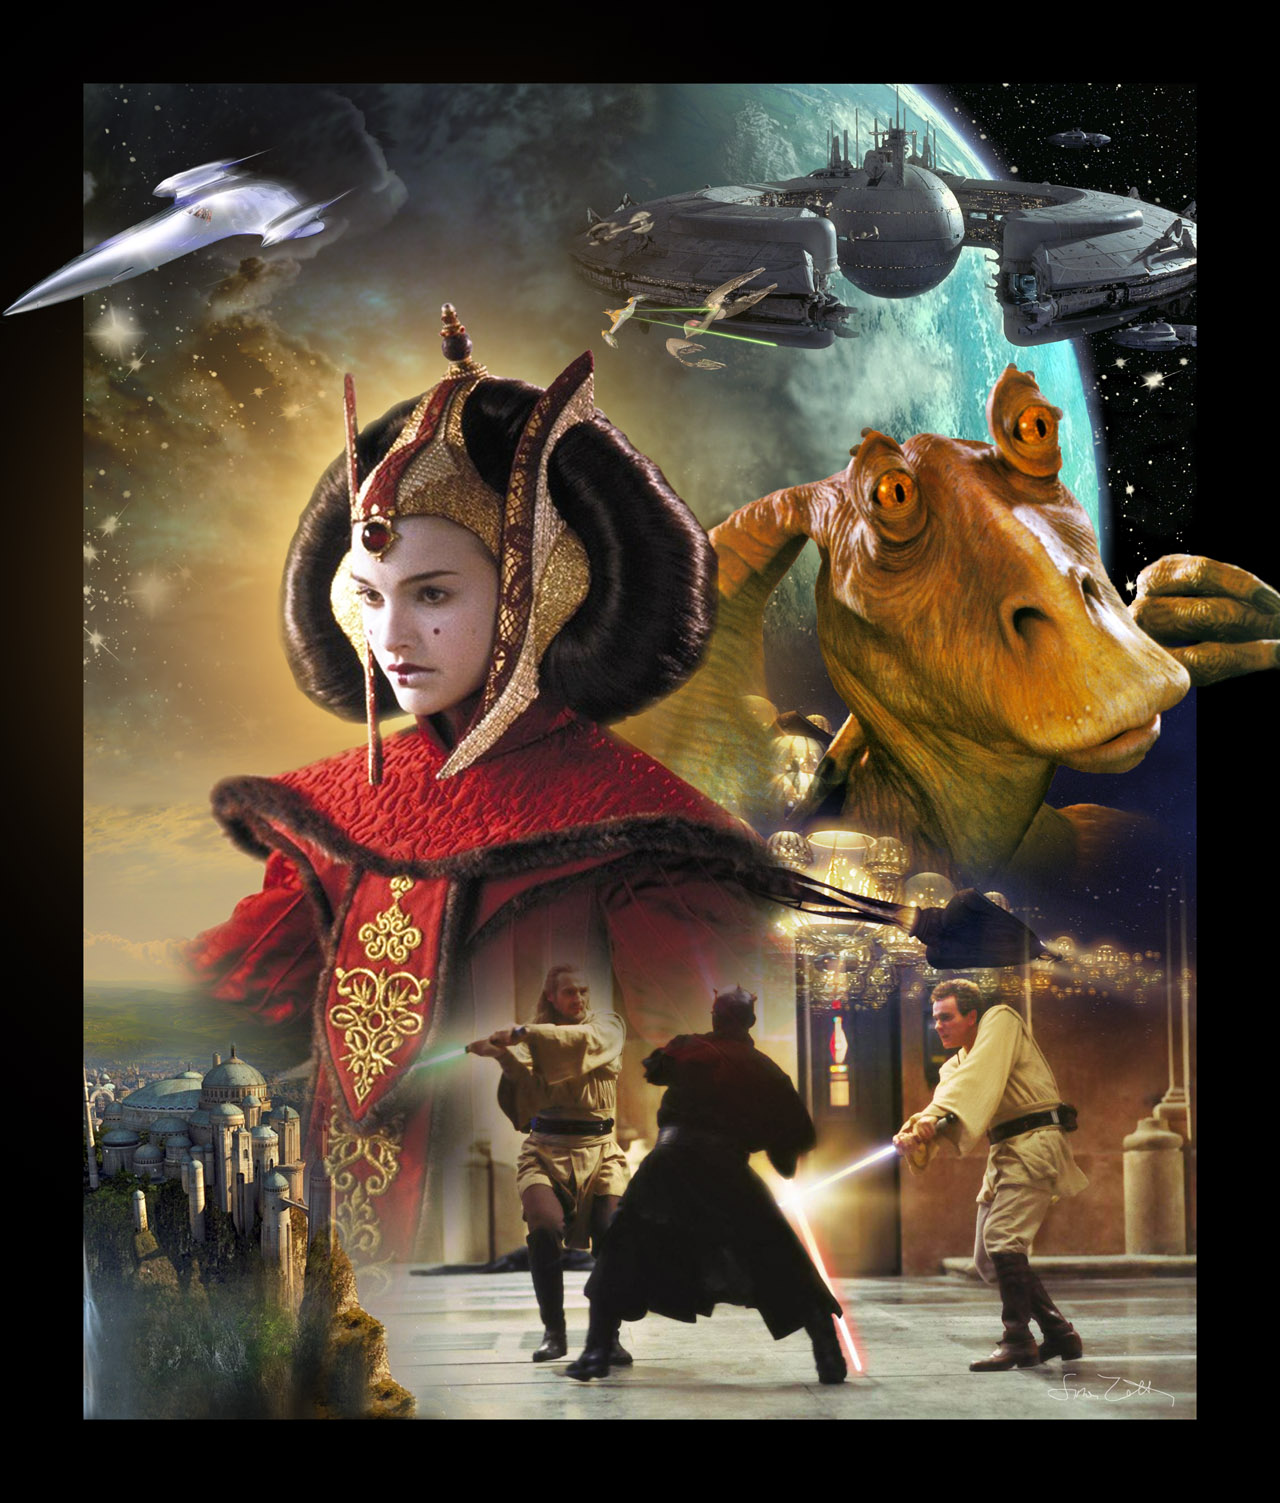 Naboo Episode I Star Wars The Phantom Menace Photo 33973156 Fanpop